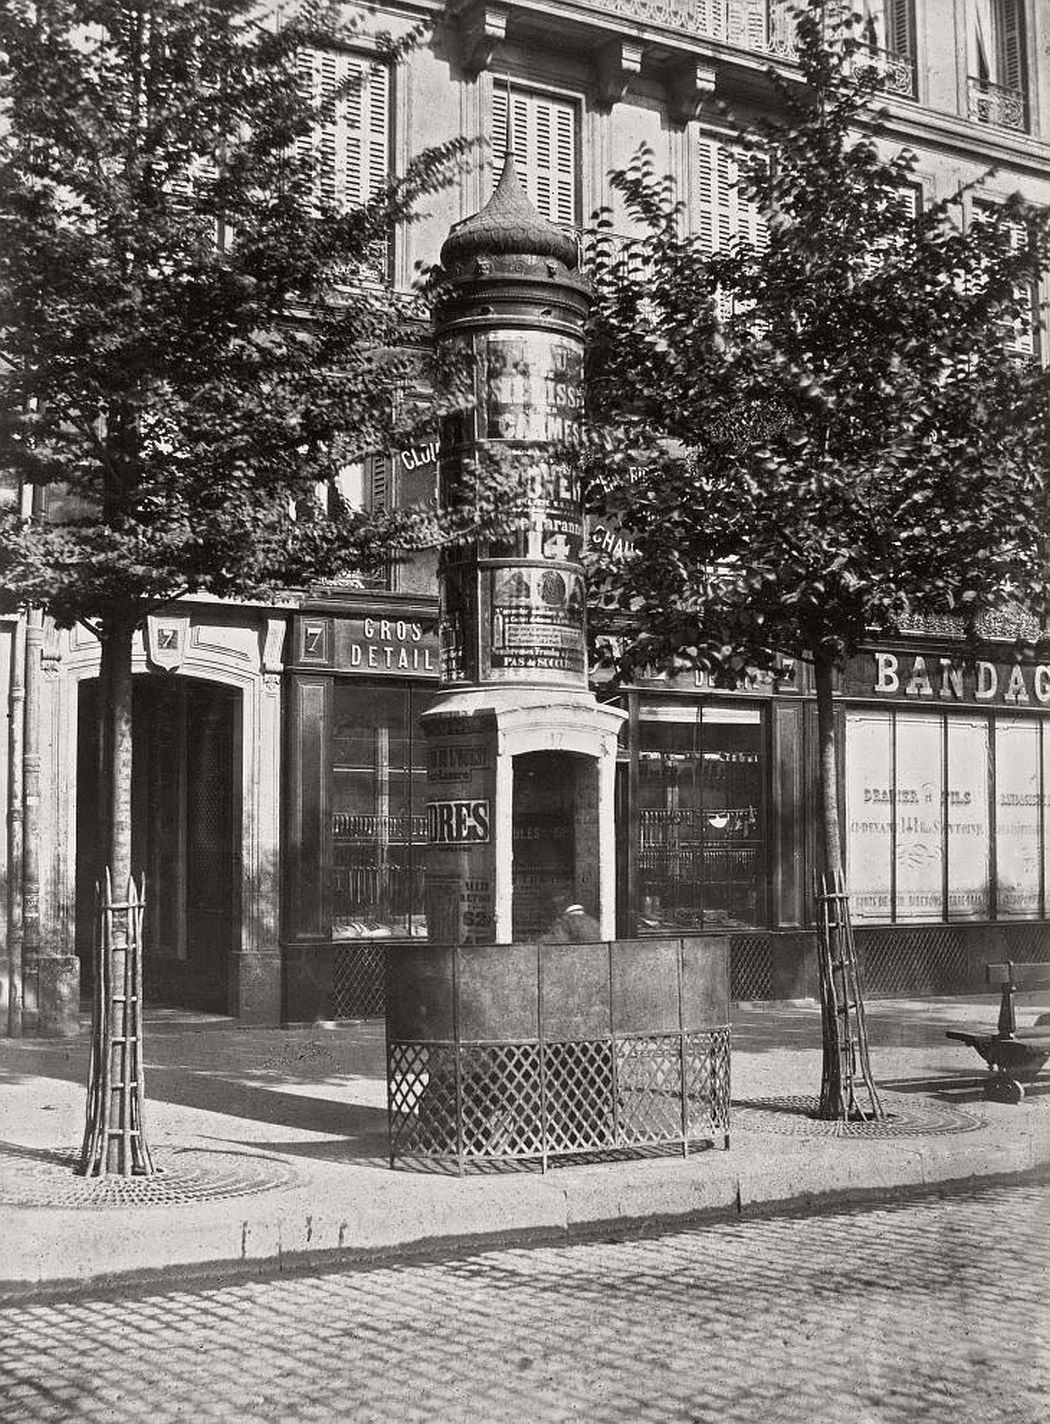 vintage-public-urinals-in-paris-by-charles-marville-19th-century-10